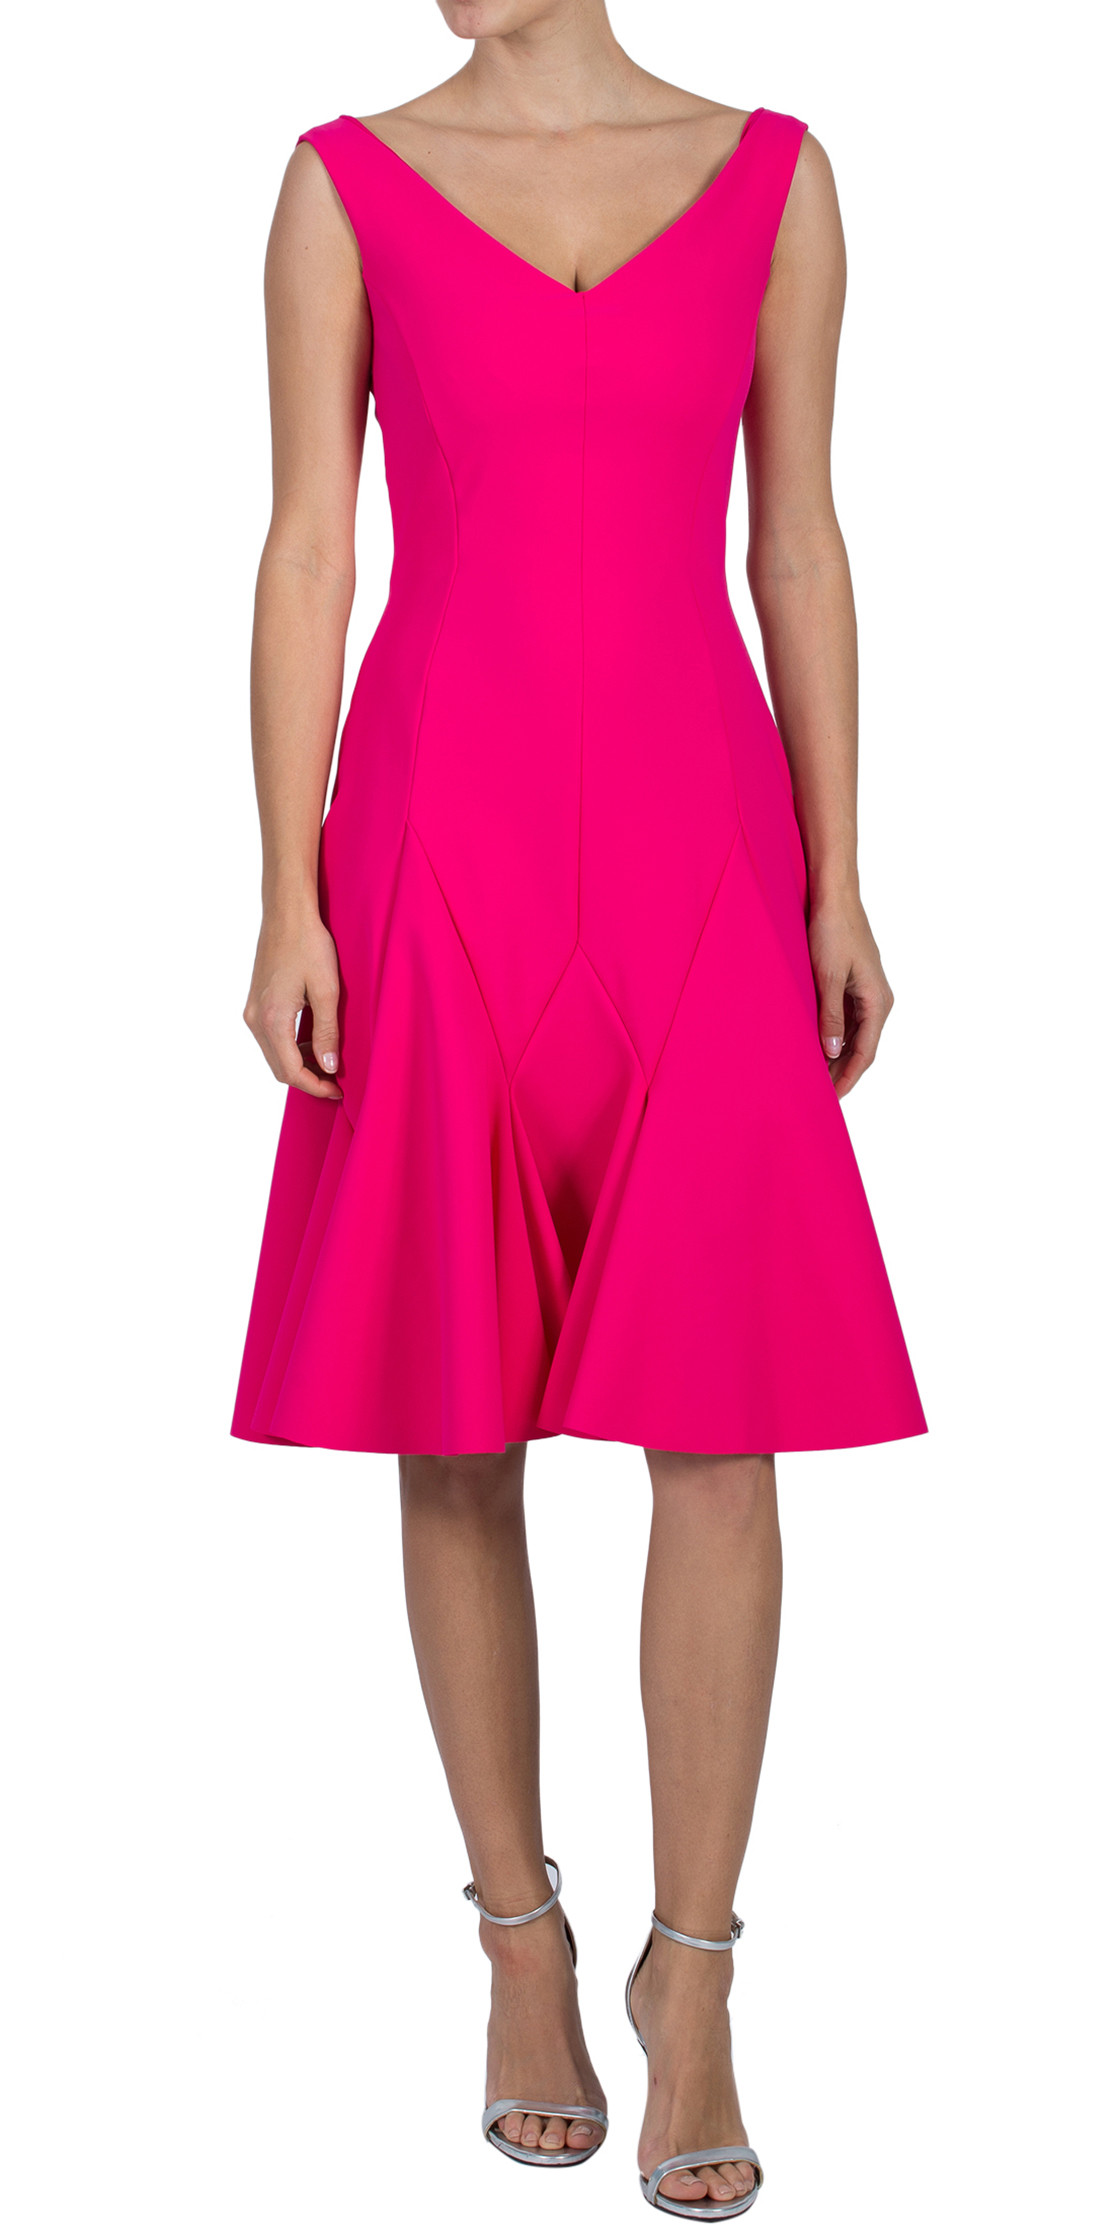 La Petite Robe di Chiara Boni Sleeveless A-Line Dress